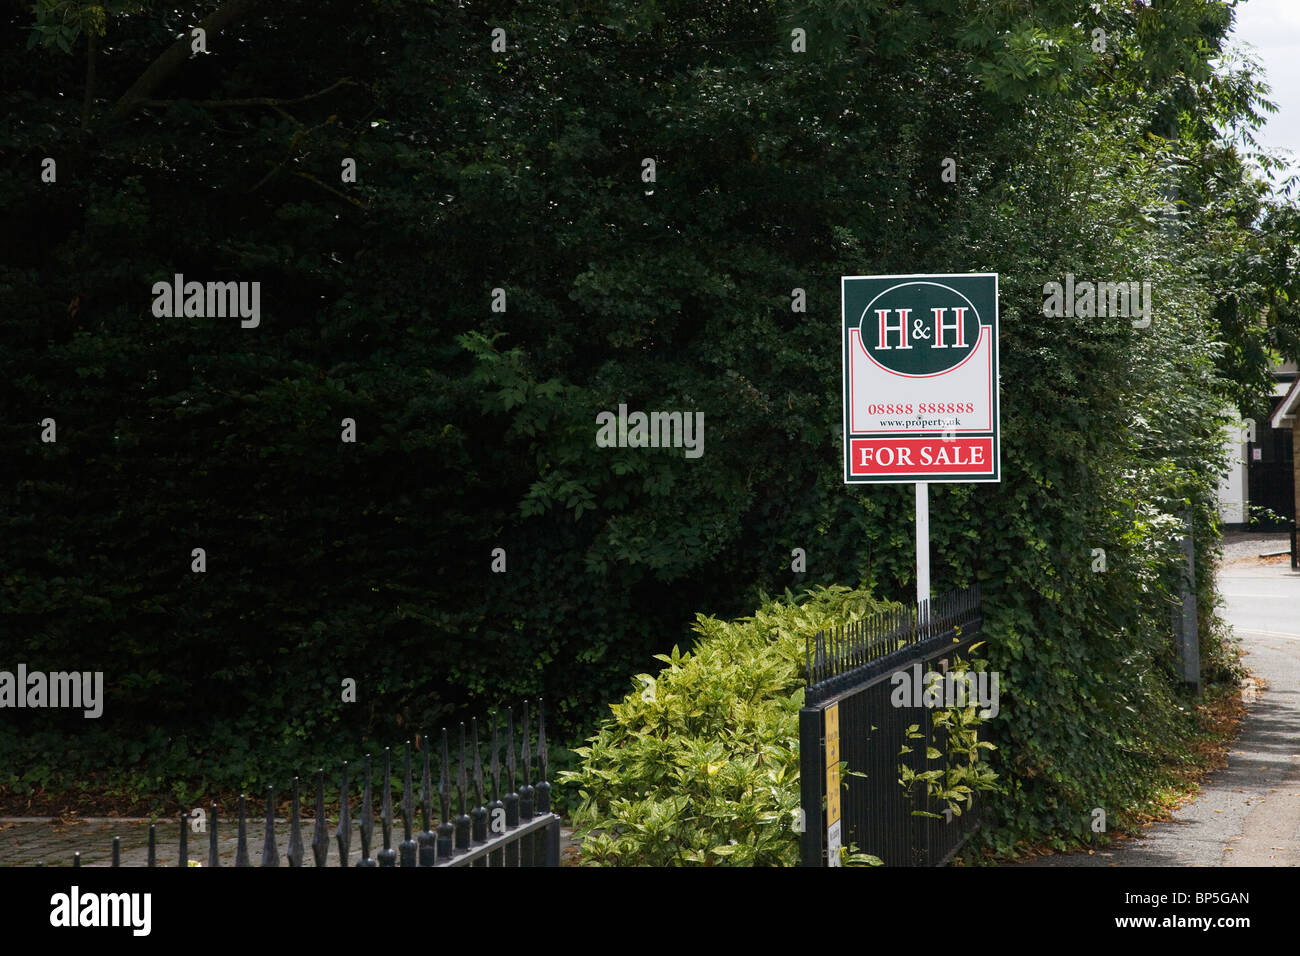 Estate Agent for sale Sign - Stock Image